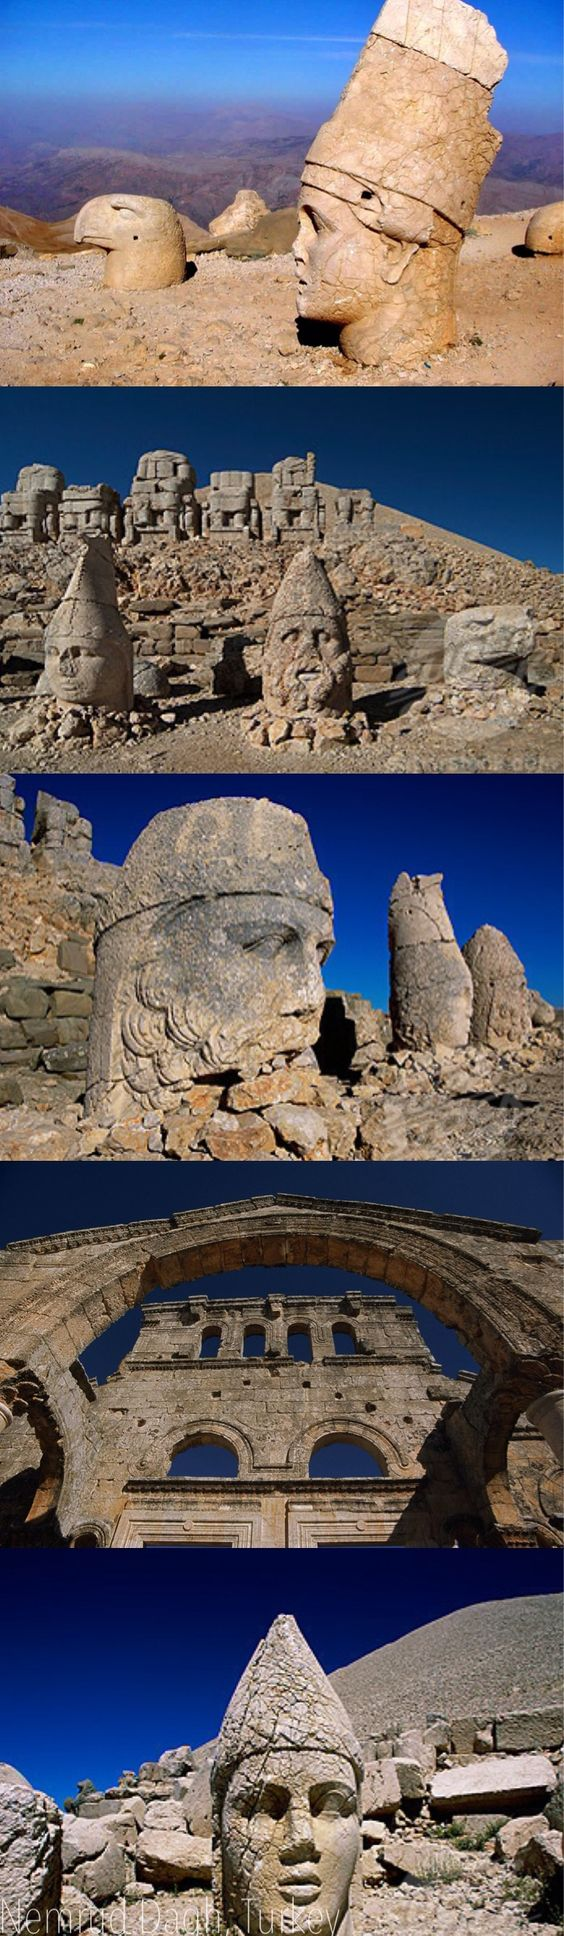 Nemrut, 2130 m mountain SE Turkey; at the summit, a number of large statues are…